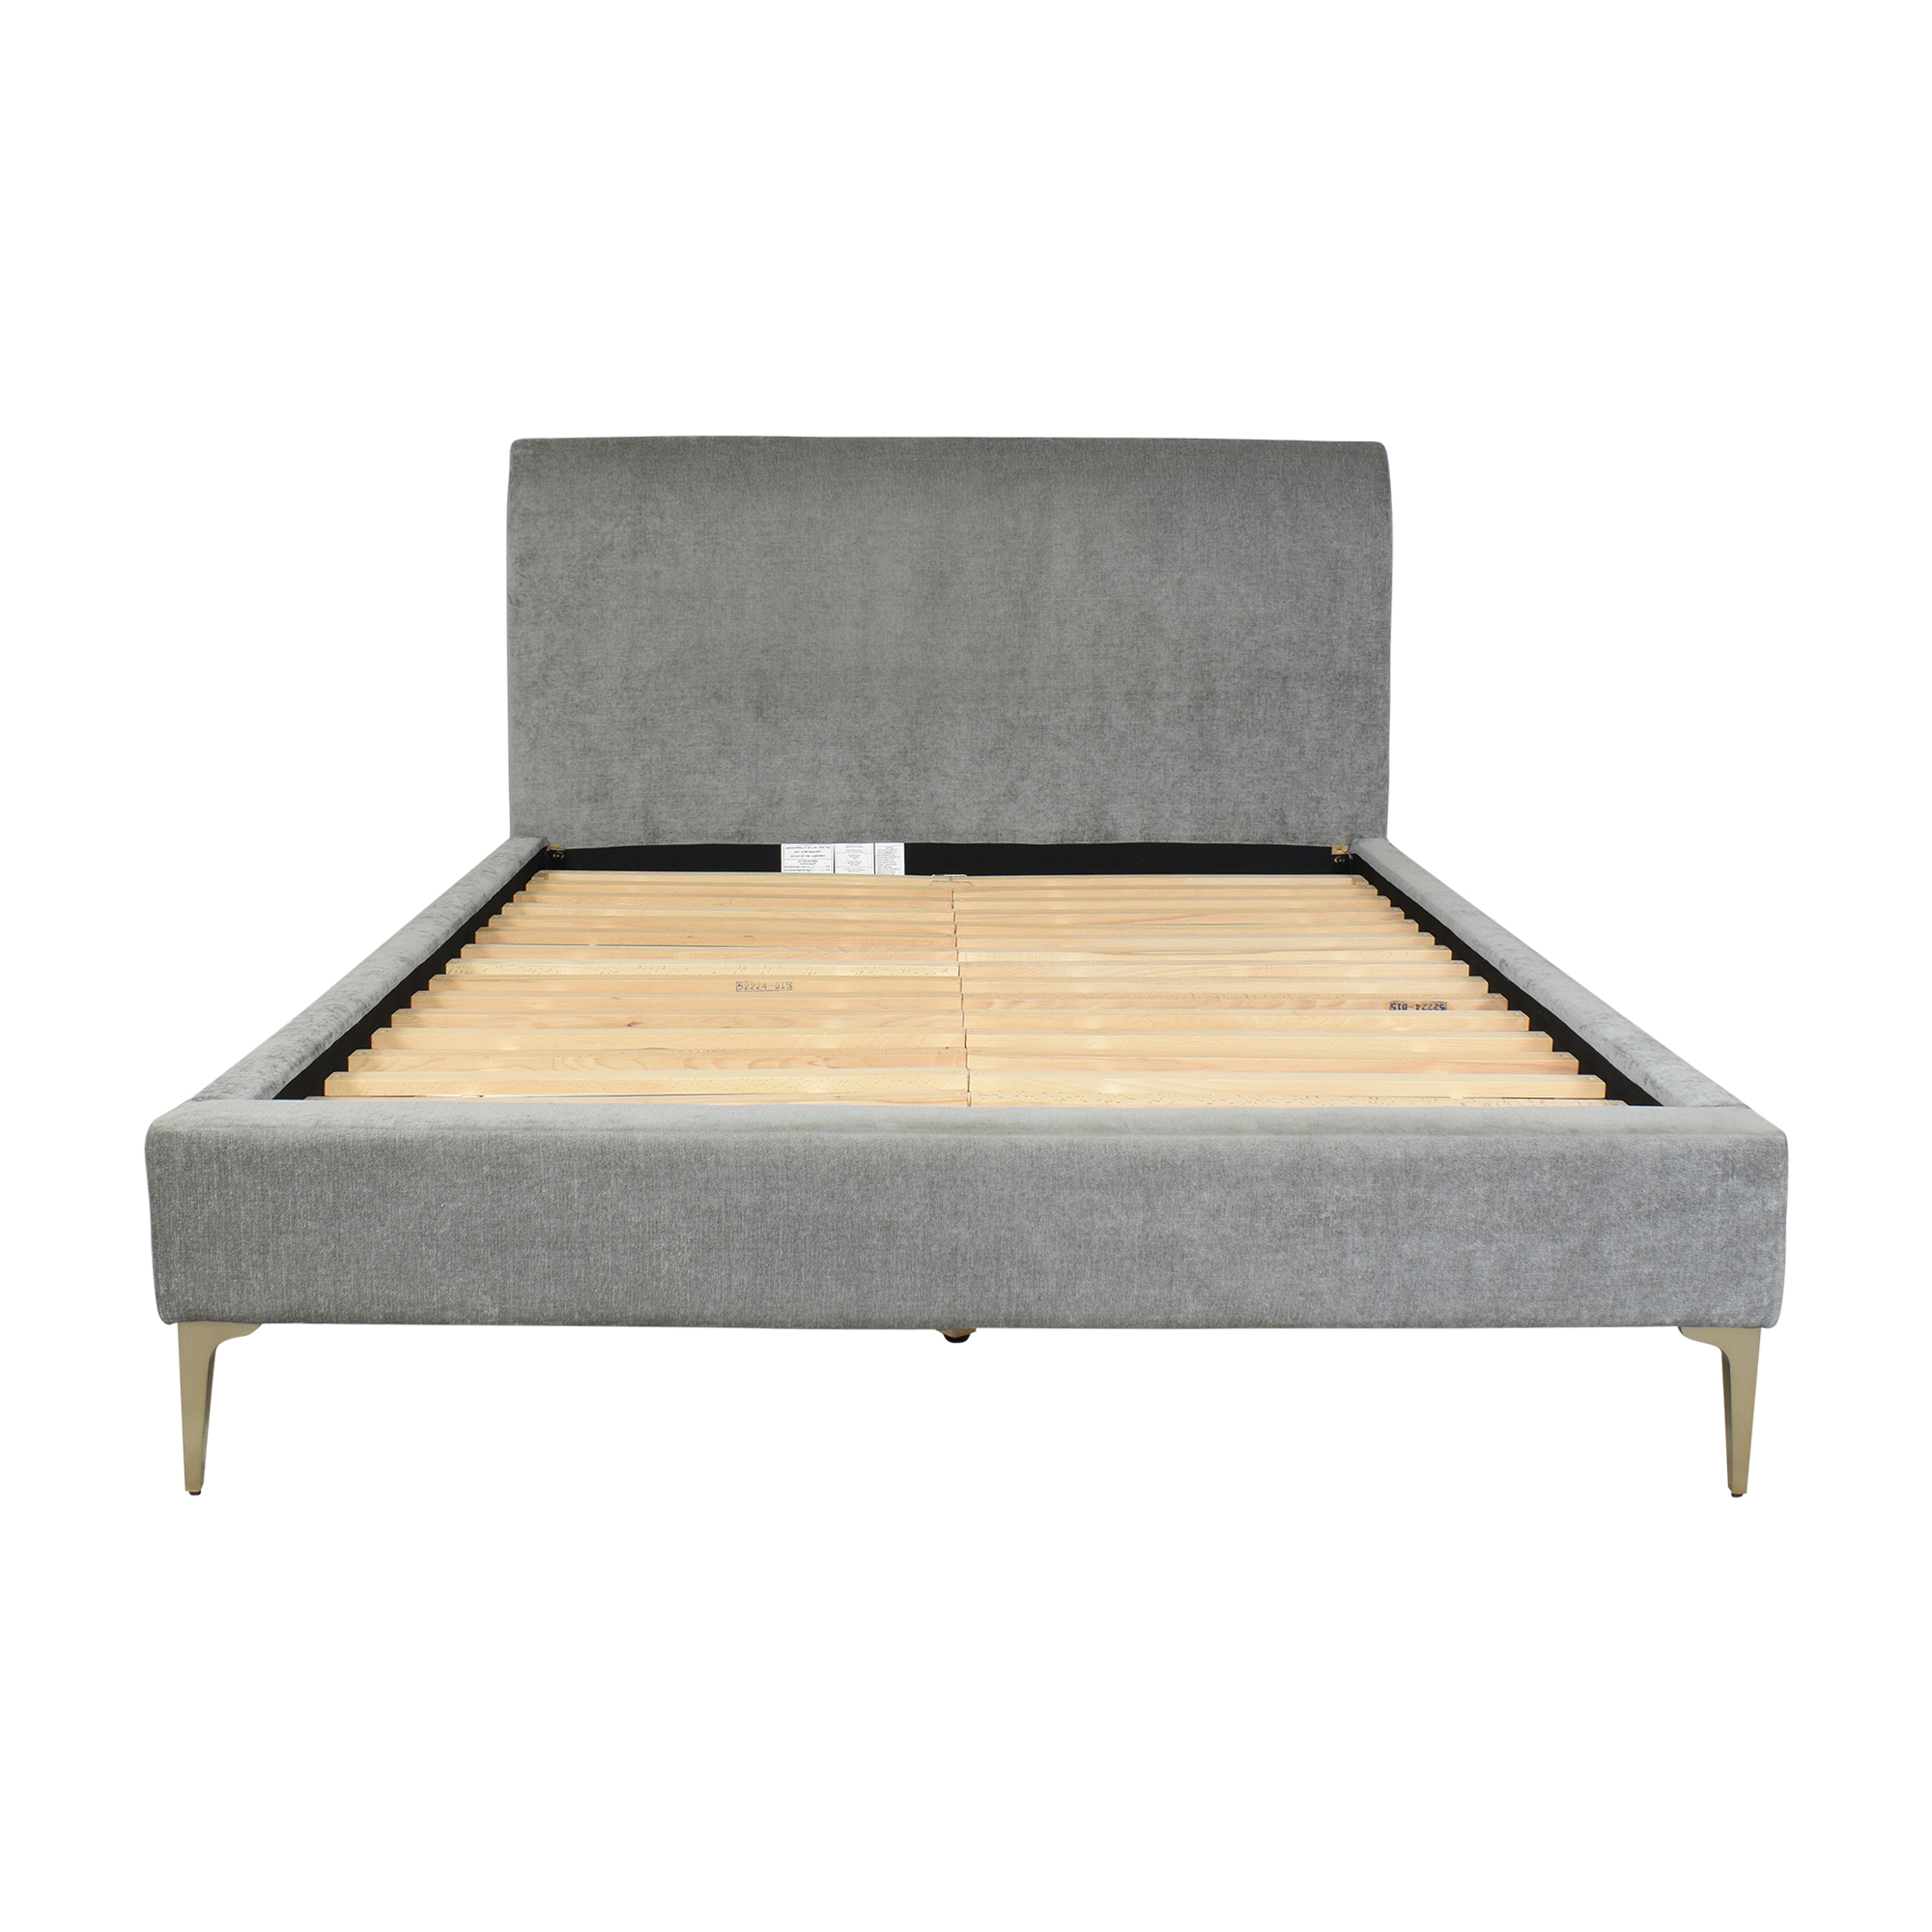 West Elm Andes Deco Upholstered Queen Bed / Beds